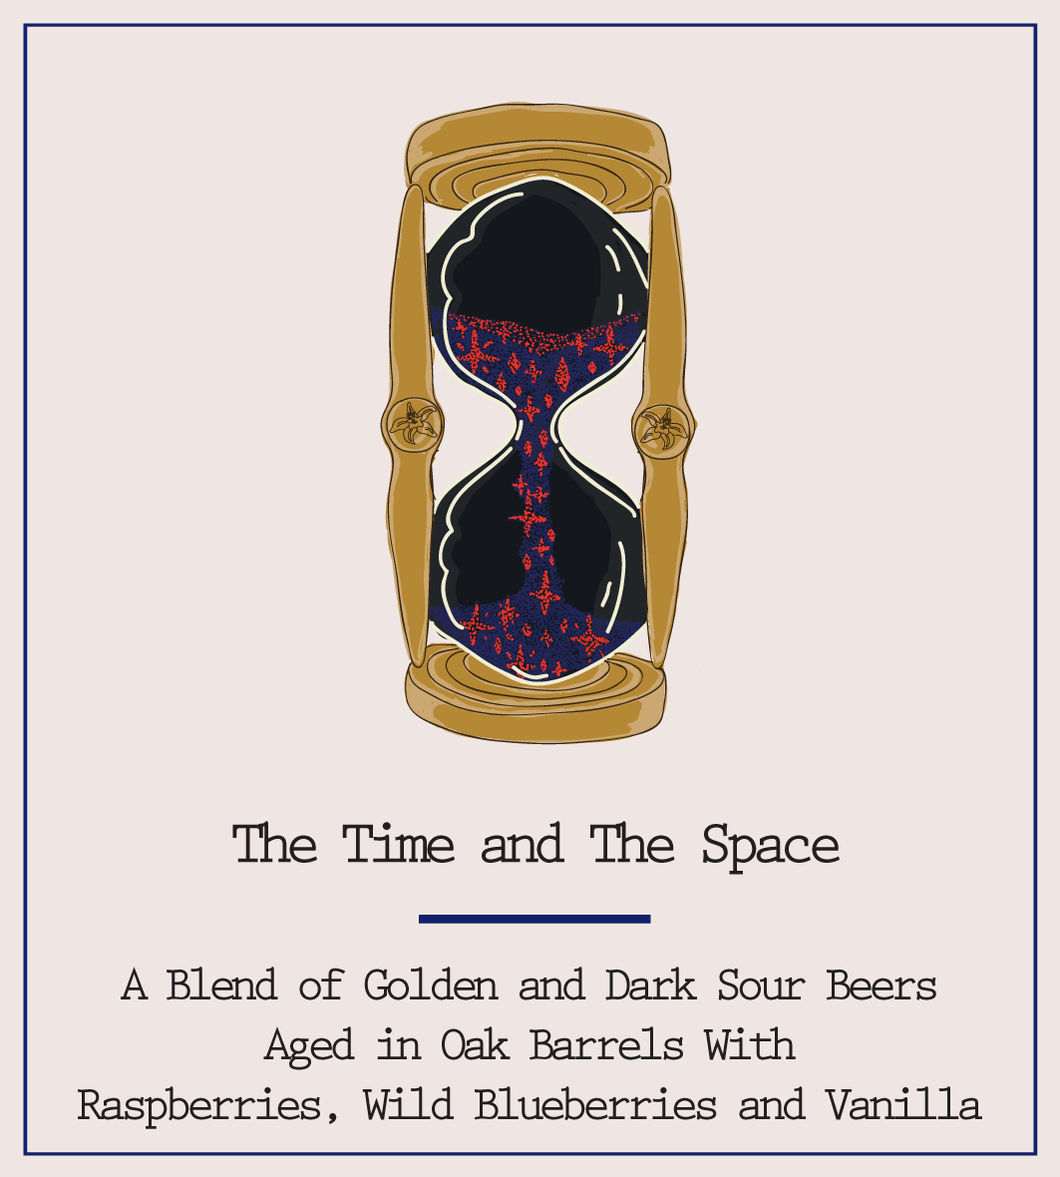 The Time and The Space 2018 Free Club Bottle